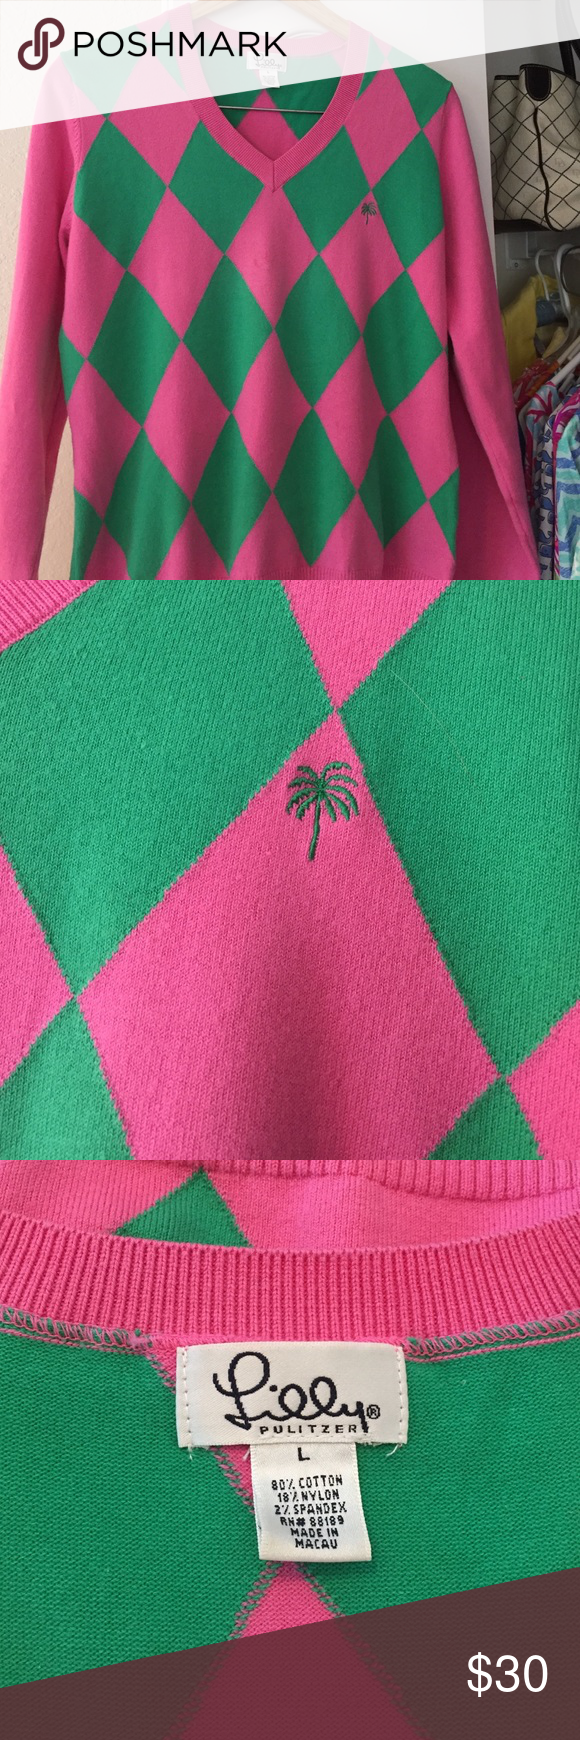 Lilly Pulitzer Argyle Sweater | Conditioning and Customer support